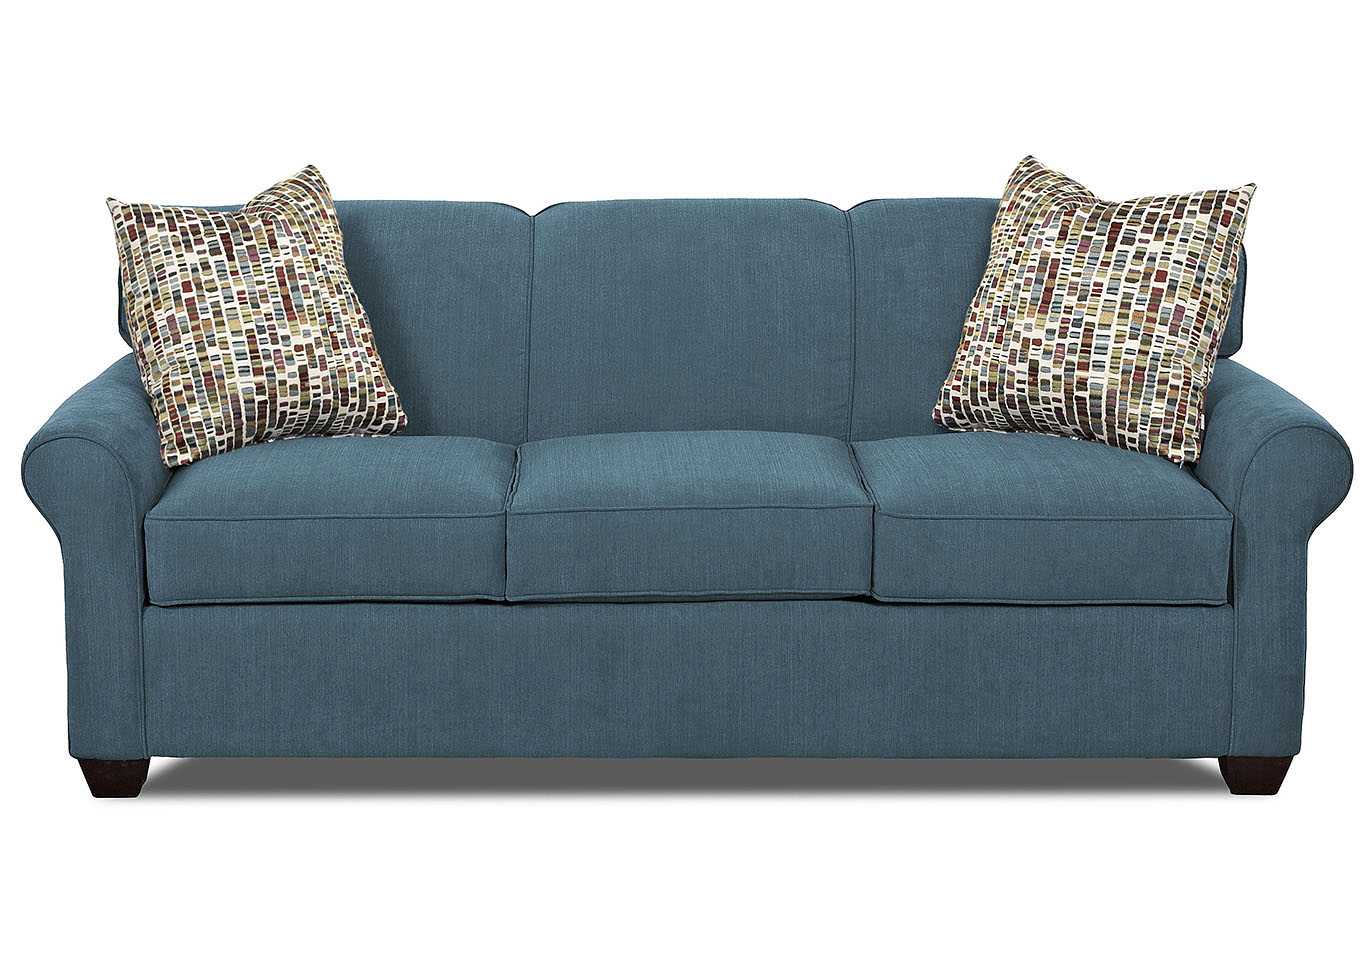 Mayhew Teal Stationary Fabric Sofa,Klaussner Home Furnishings